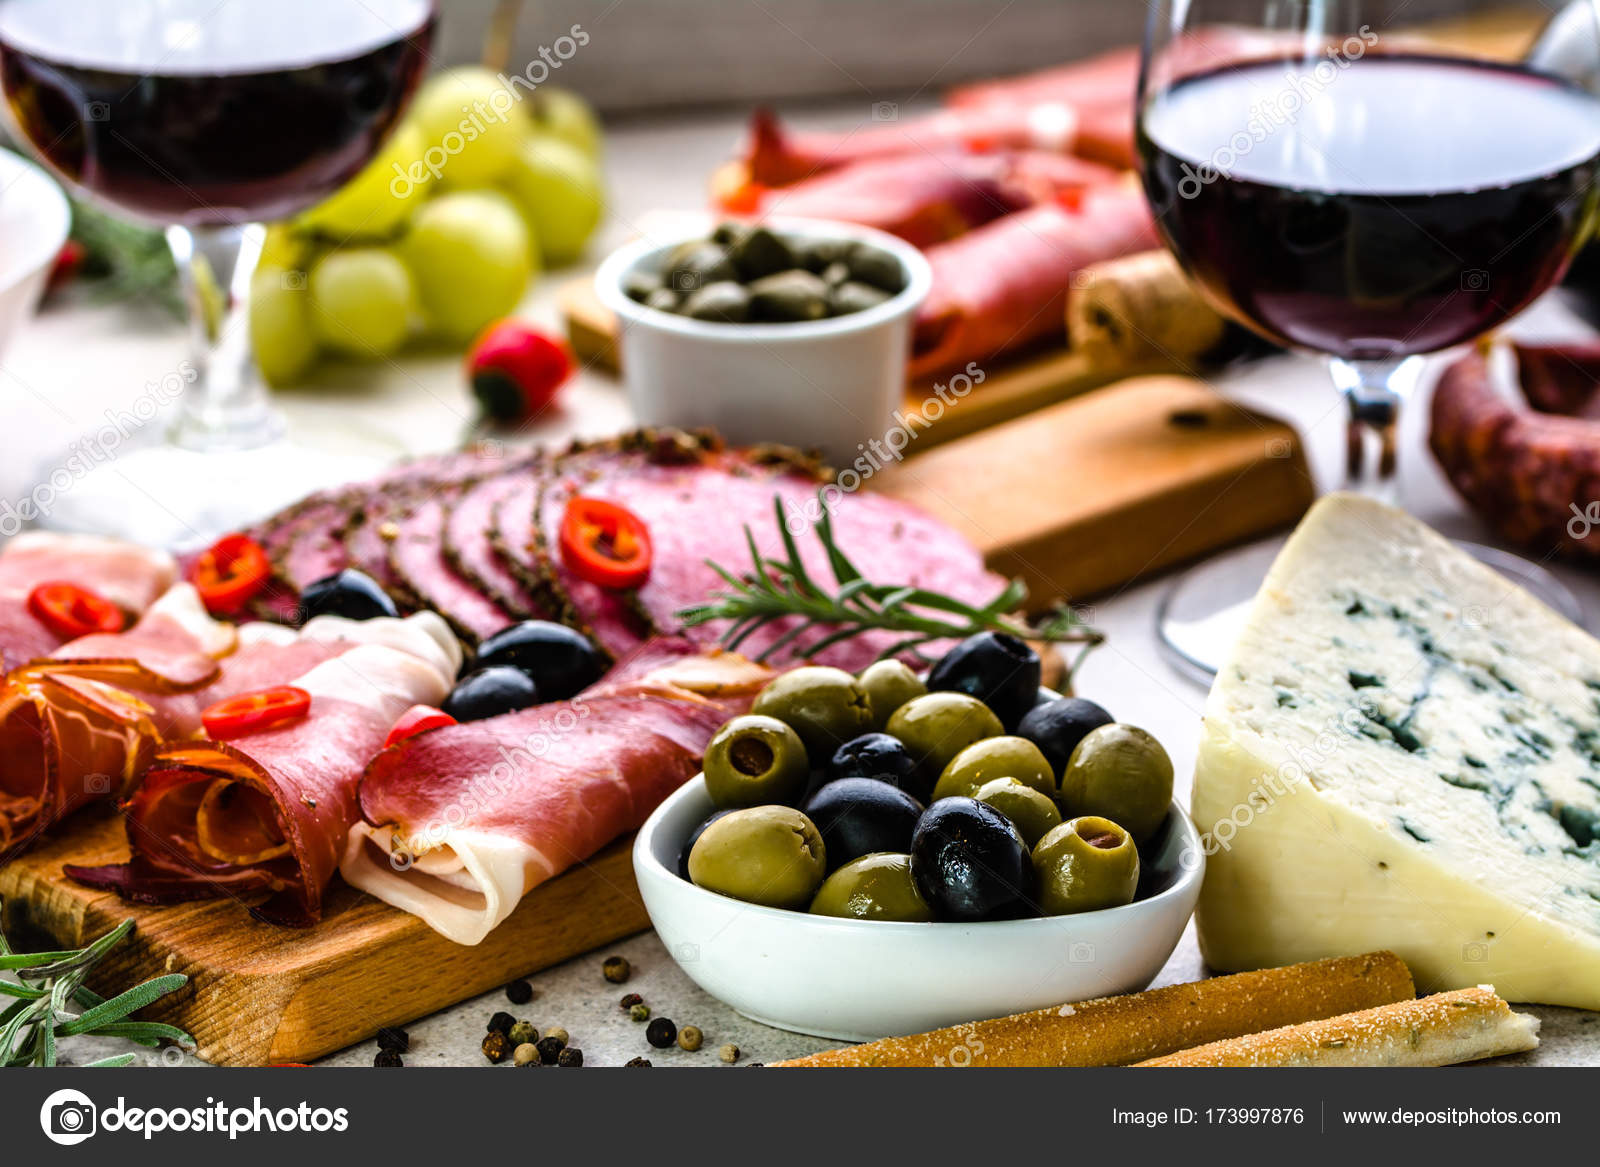 Variety Food On Table Wine Snack Set Olives Cheese And Other Appetizer Italian Antipasti On Plate Stock Photo Image By C Alicjane 173997876